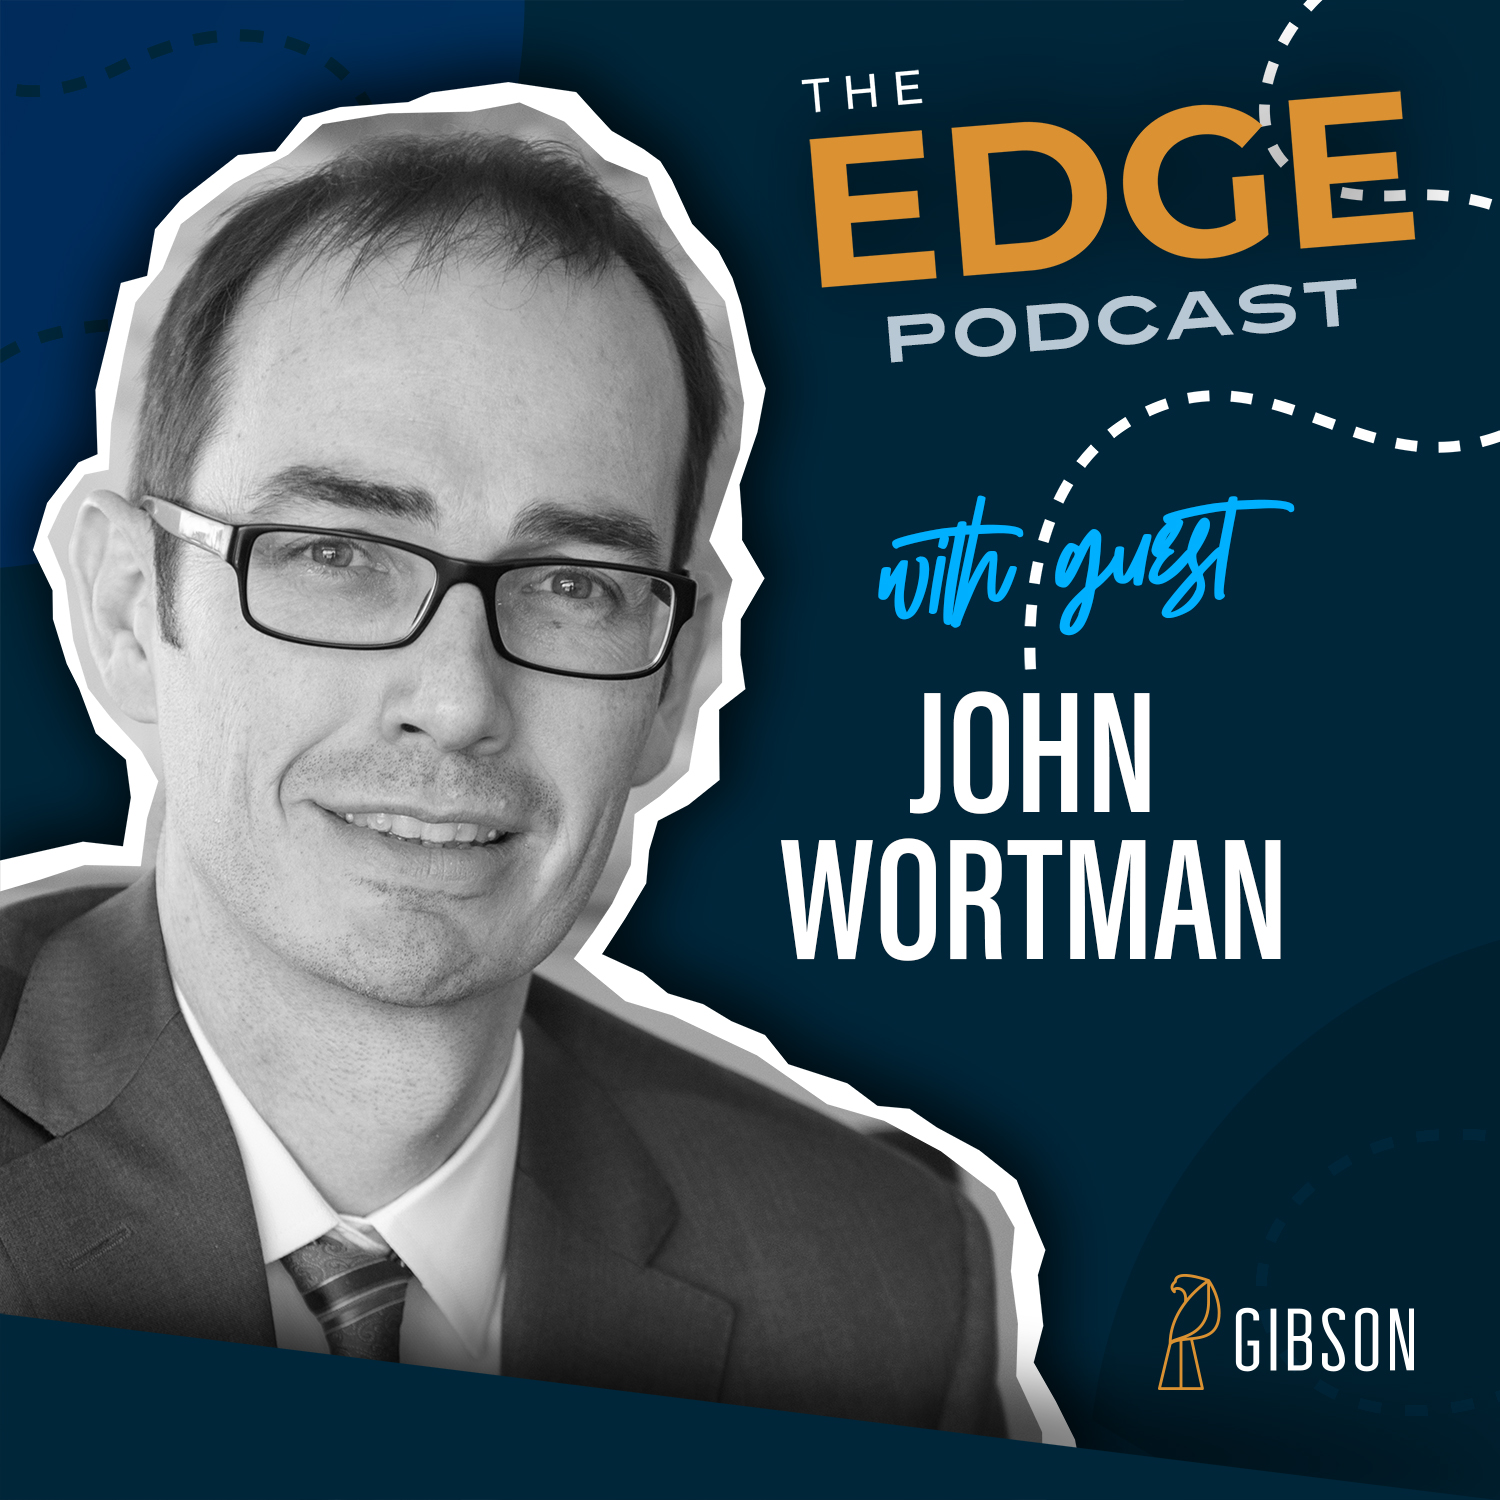 John Wortman dives into the evolution of teams and leaders